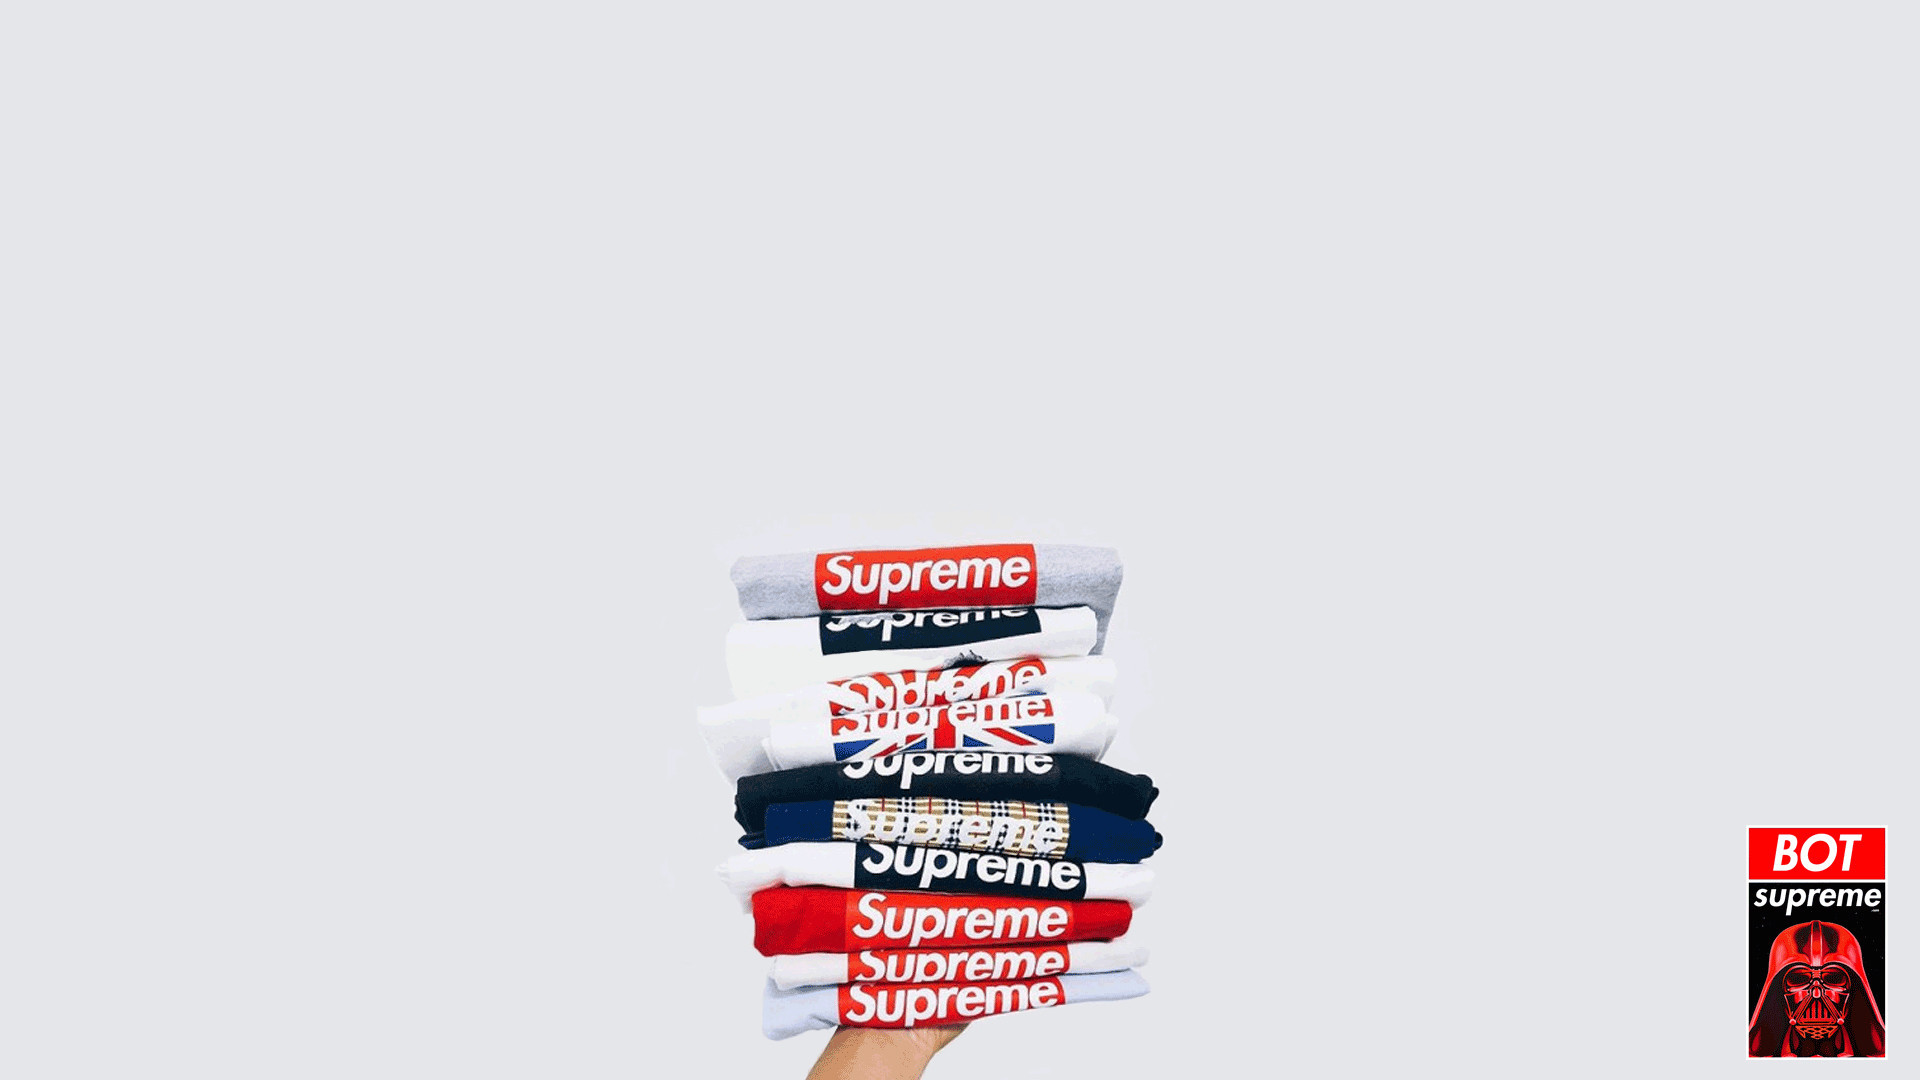 1920x1080 supreme wallpaper #181023